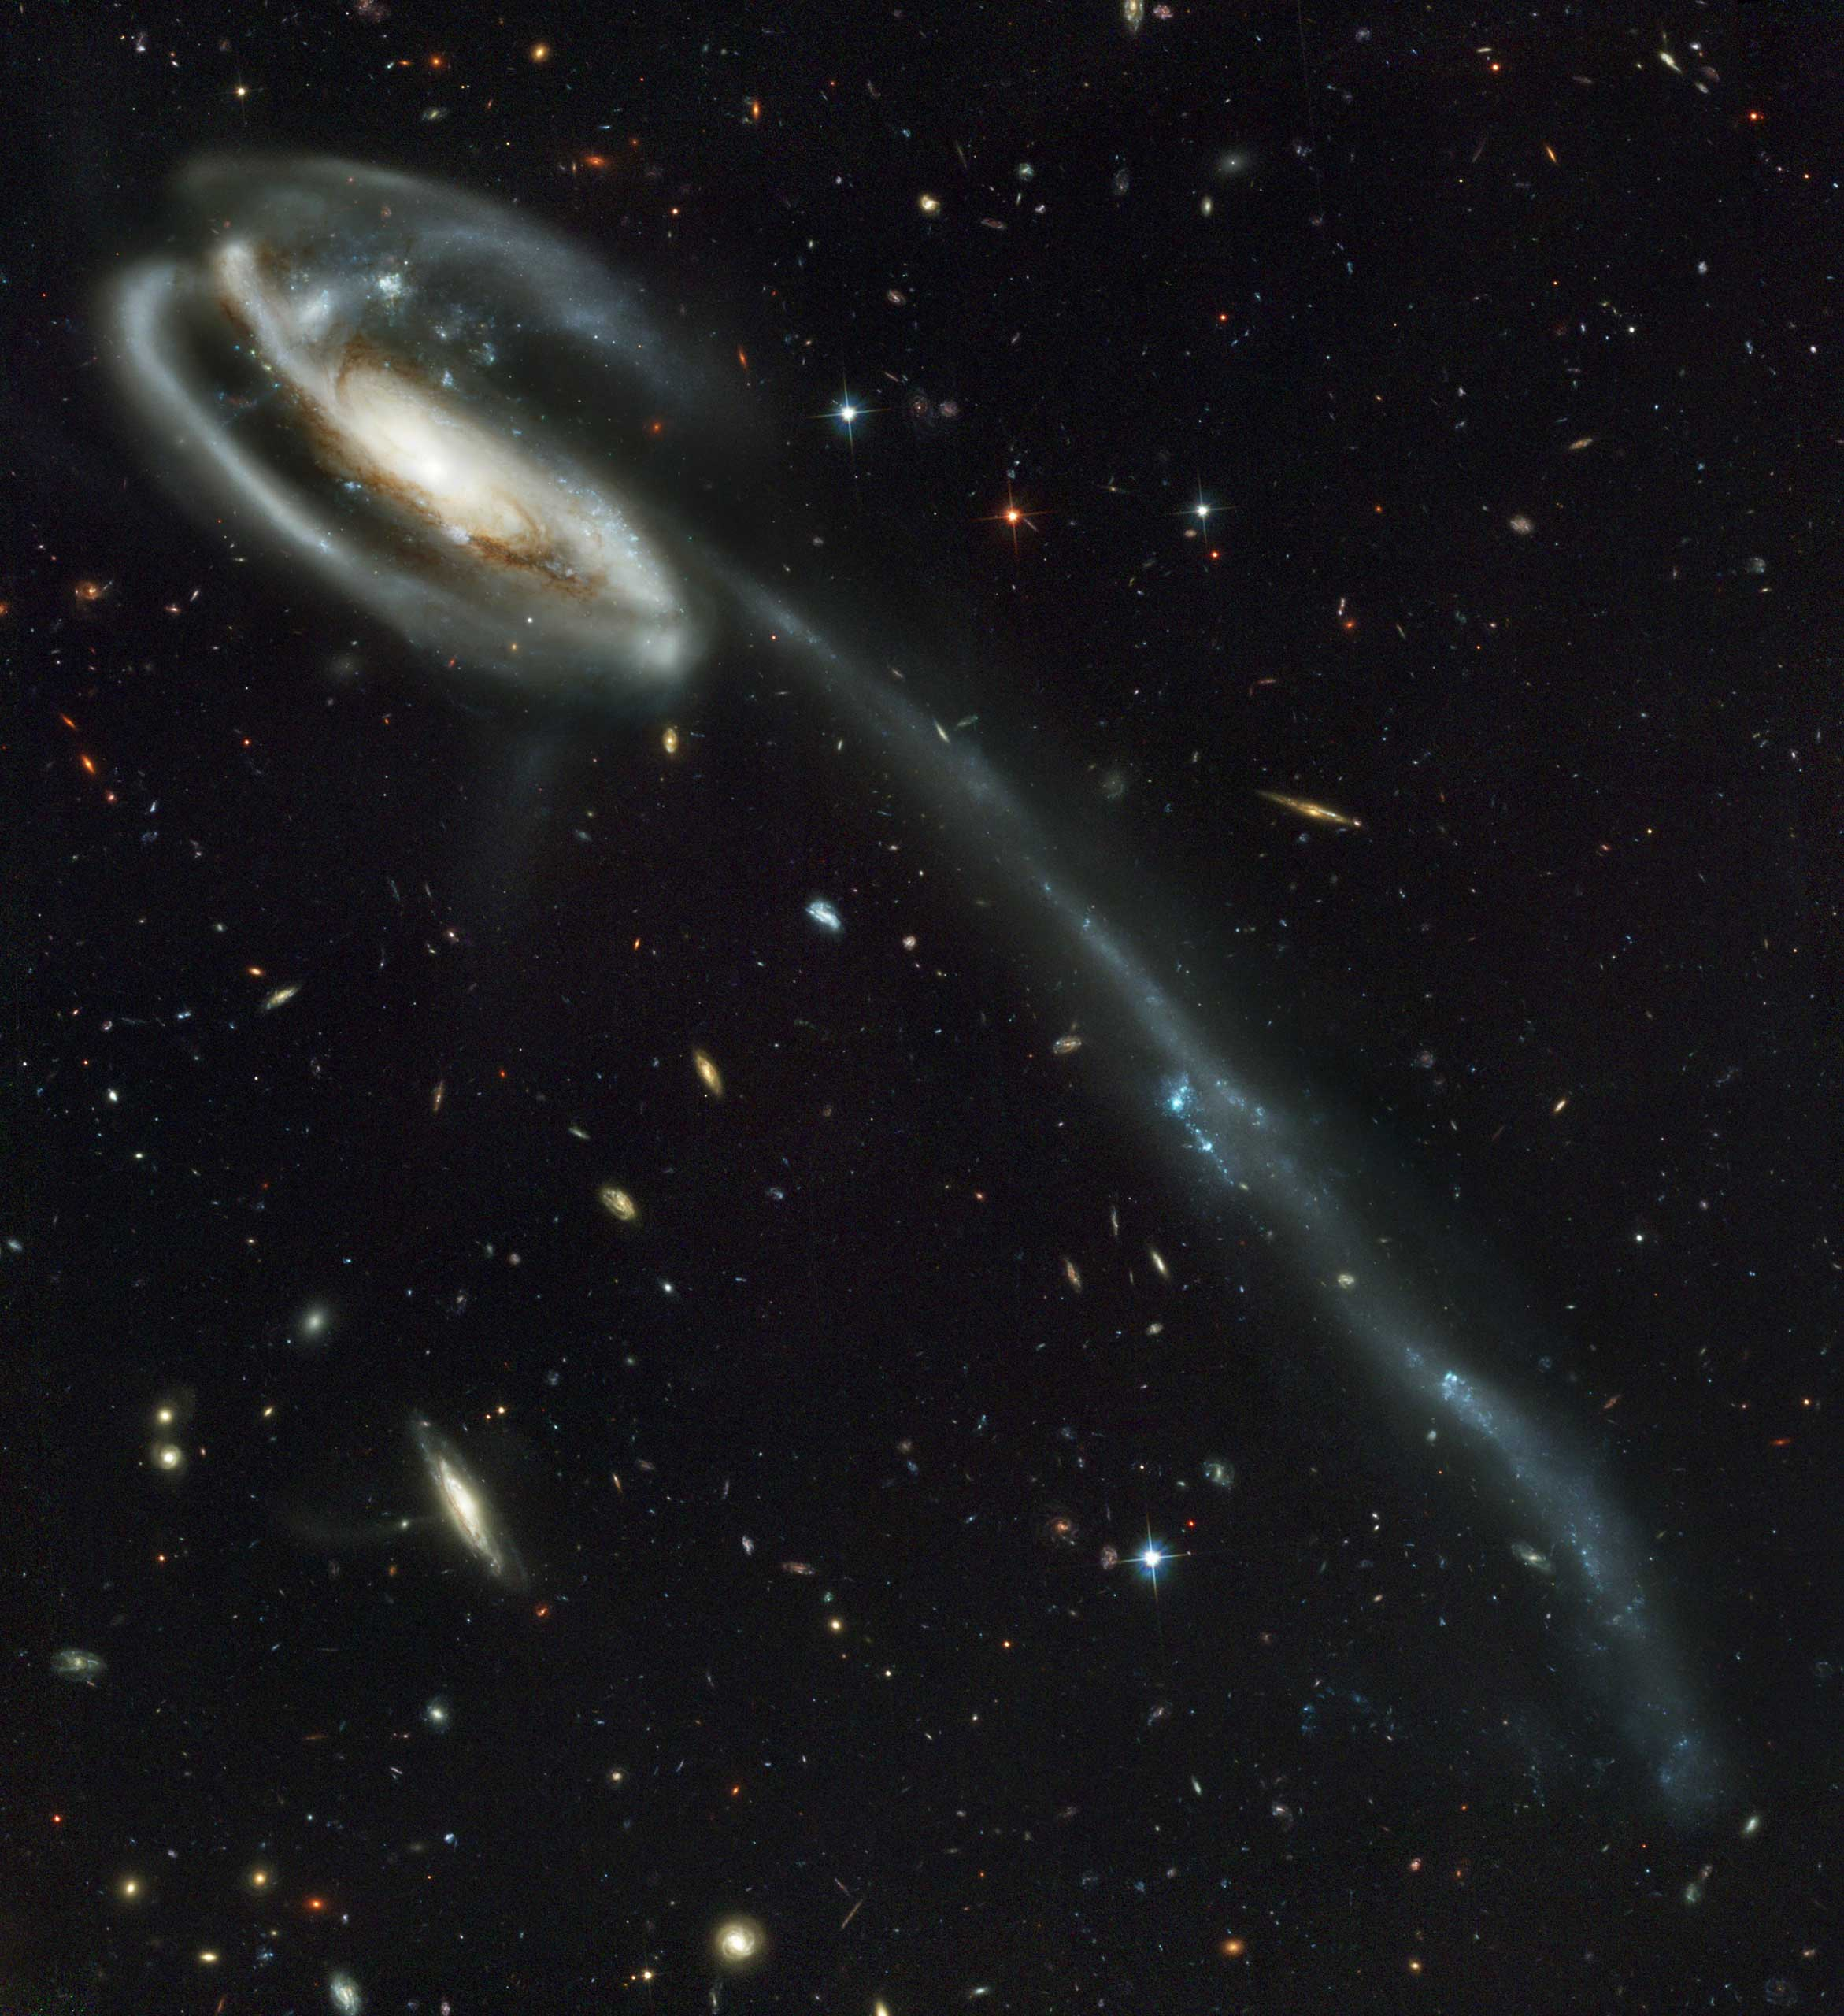 The Tadpole:                               The distorted shape of this spiral galaxy, also known as UGC 10214,  was caused by a small interloper, a very blue, compact galaxy visible in the upper left corner of the more massive Tadpole. The Tadpole resides about 420 million light-years away in the constellation Draco. Strong gravitational forces from the interaction created the long tail of debris, consisting of stars and gas that stretch out more than 280,000 light-years.                               Image released on April 30, 2002